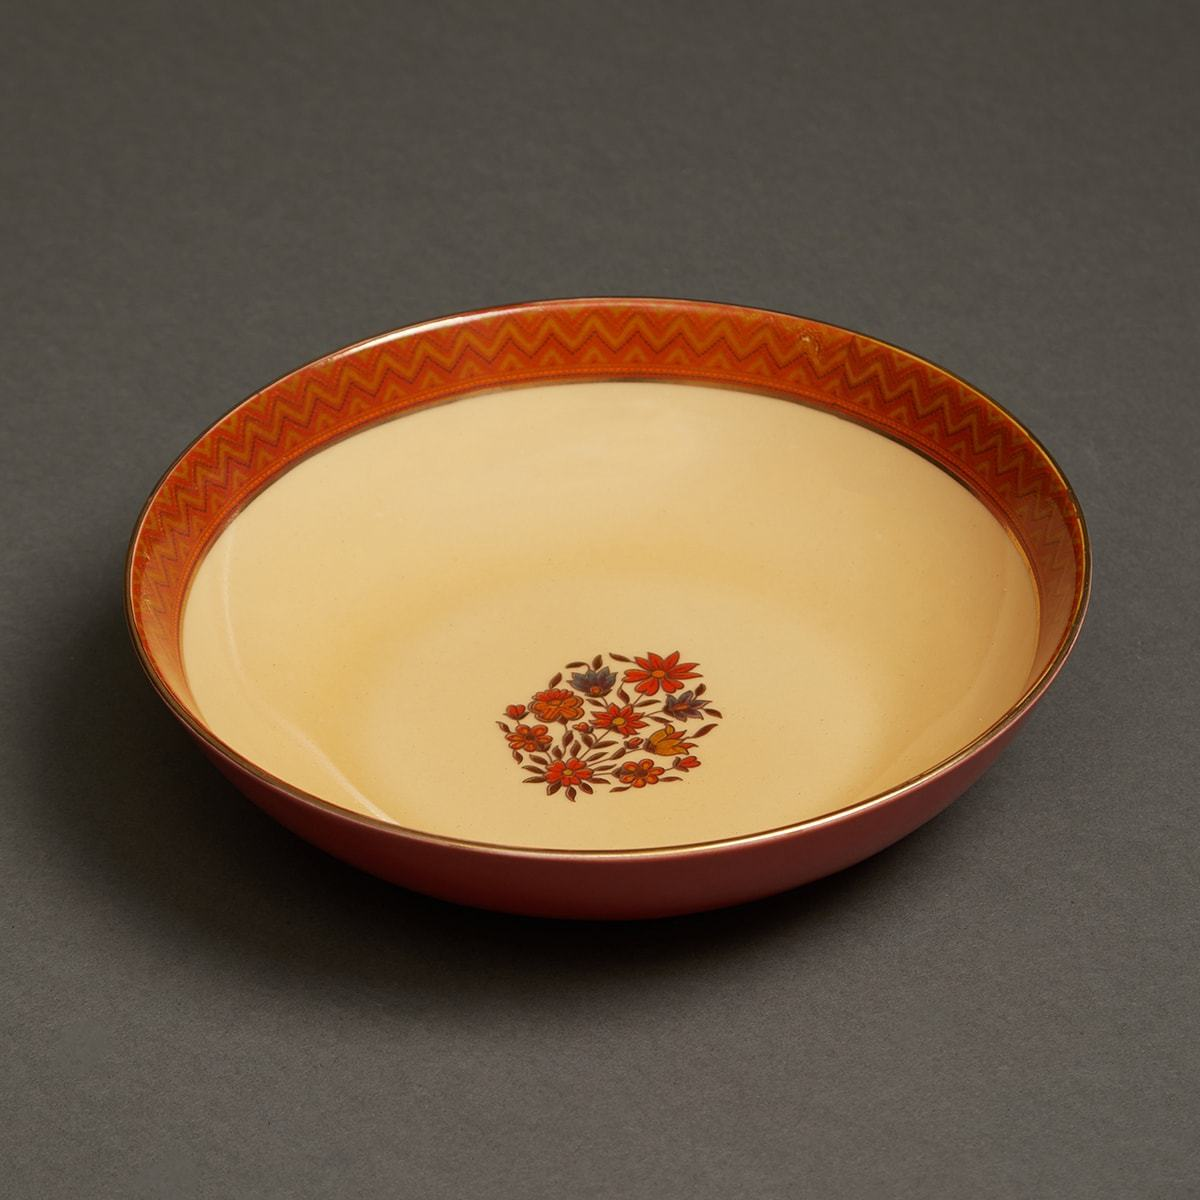 Rust Banki Ceramic Round Serving Bowl (Small) by Ritu Kumar Home - Home Artisan